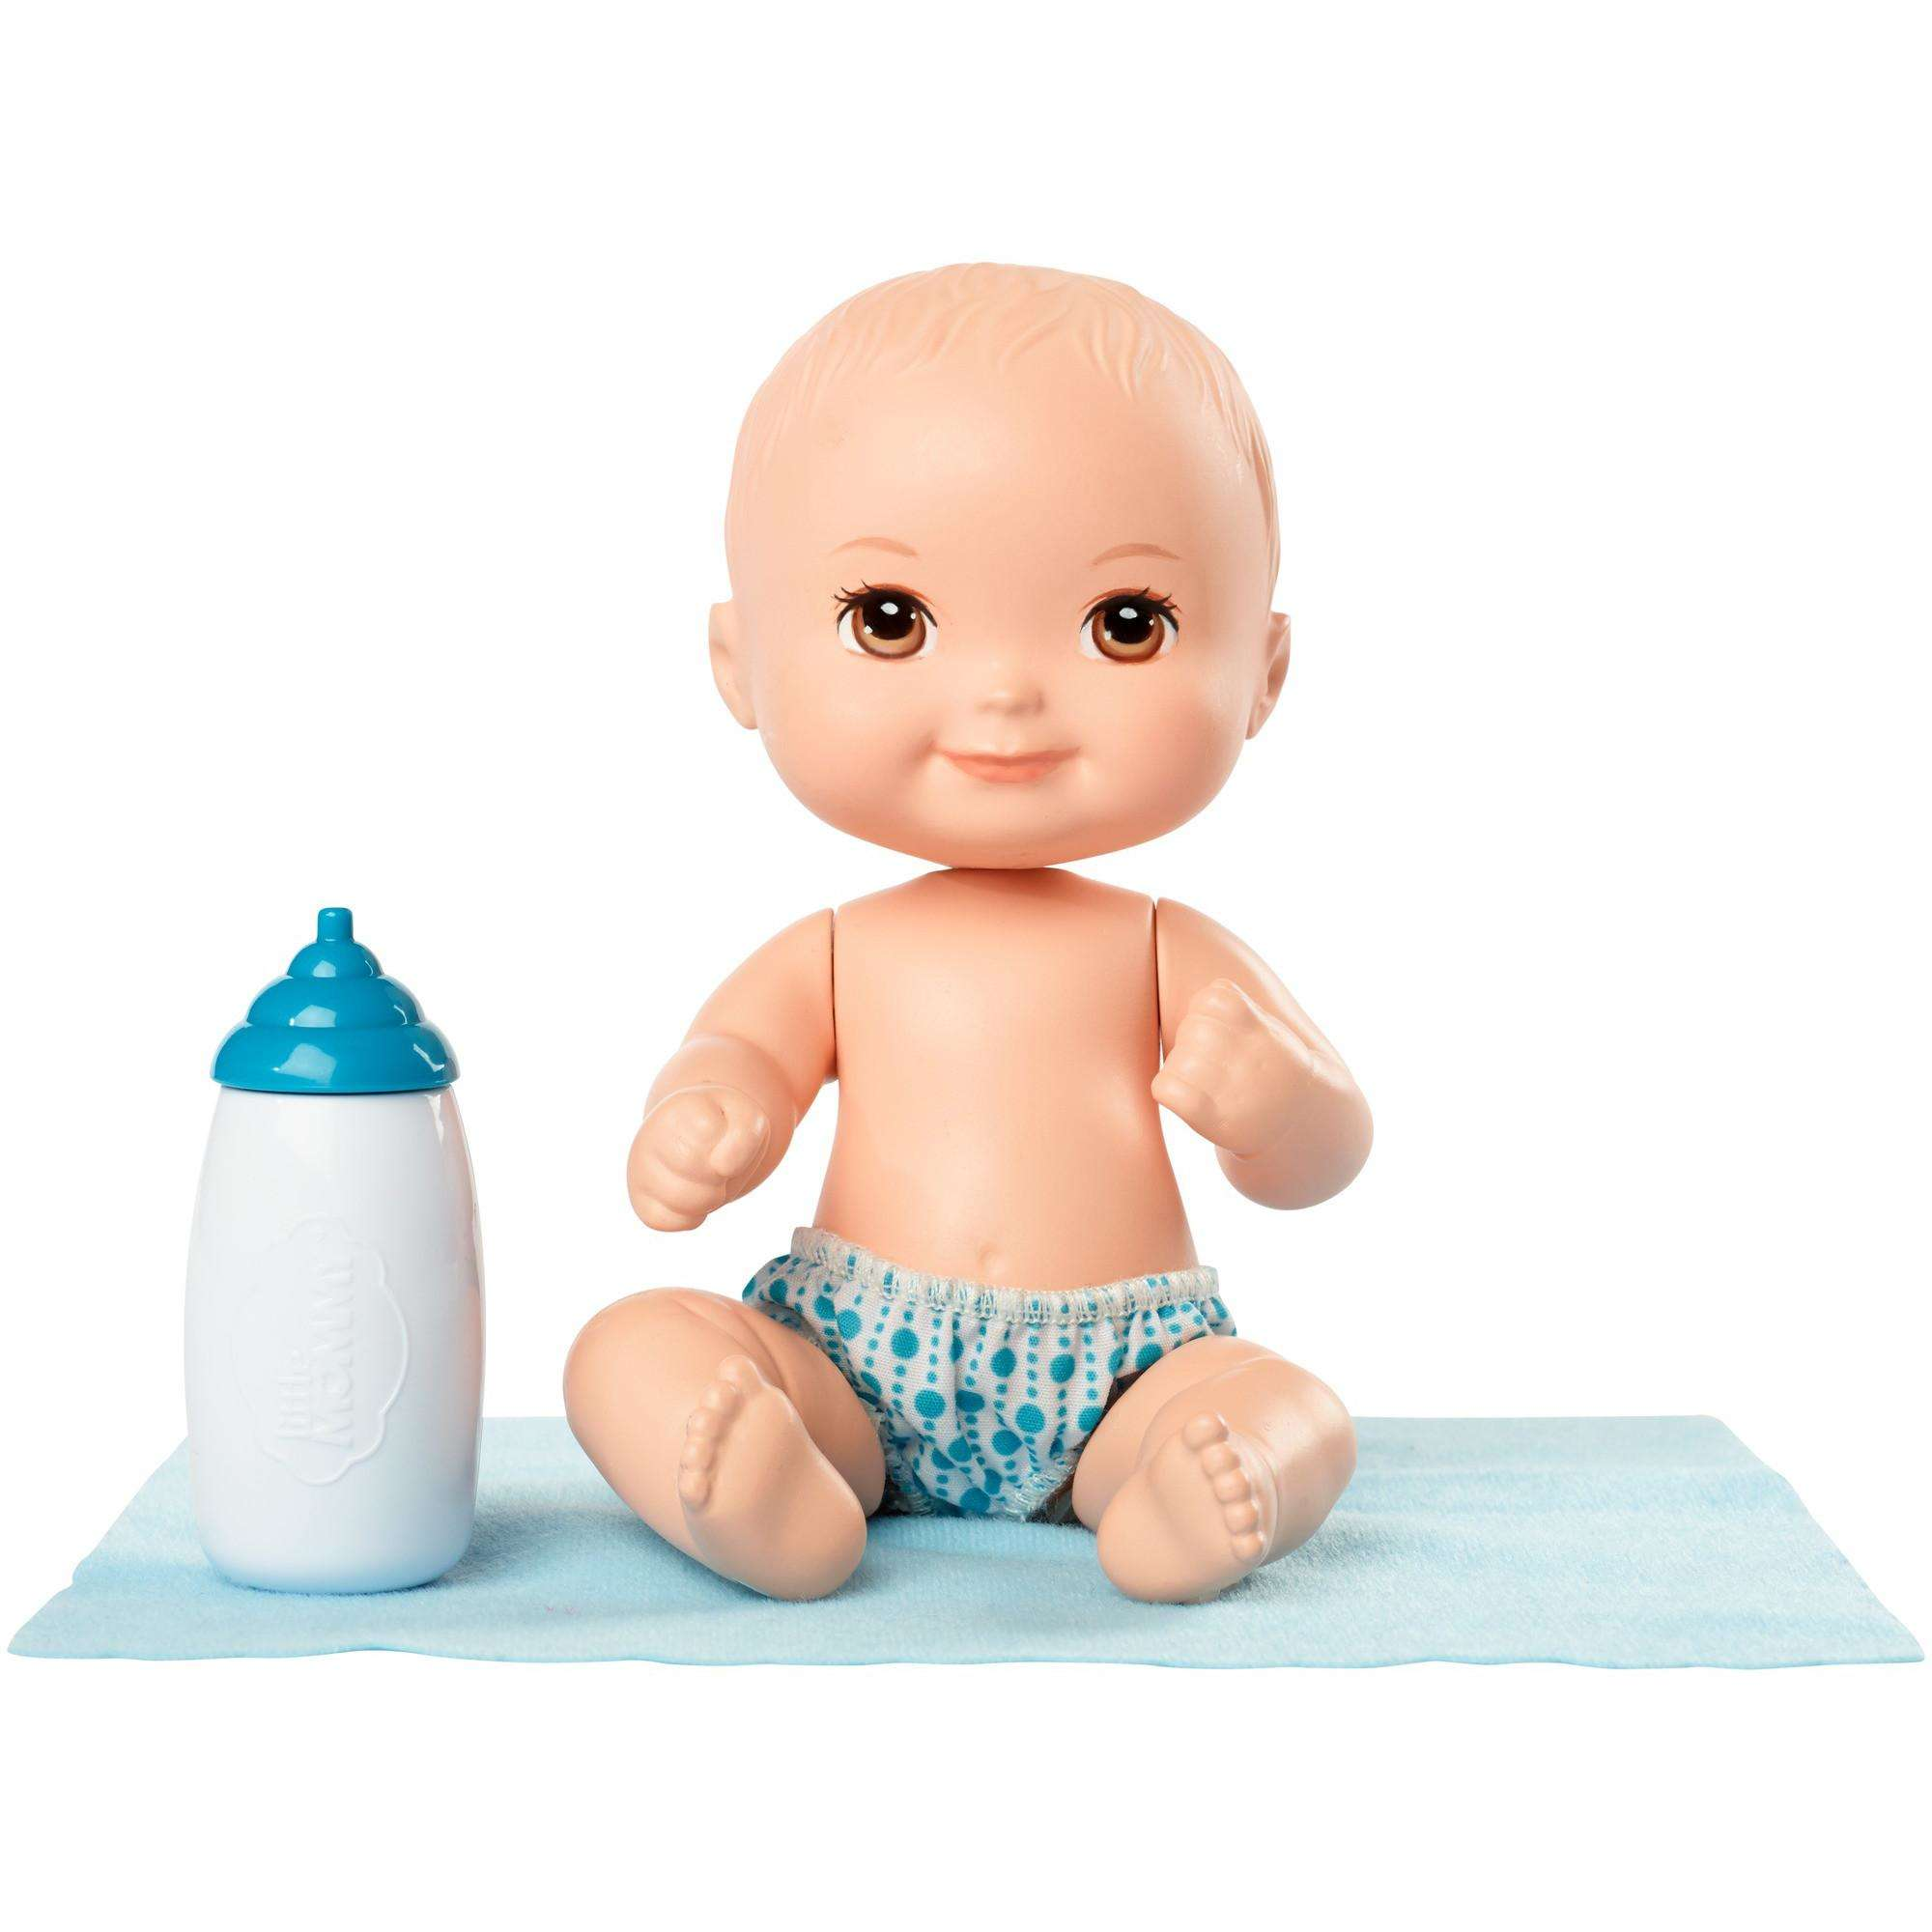 Little Mommy Mini Baby Nurture and Care Doll 3 - Blue Bottle